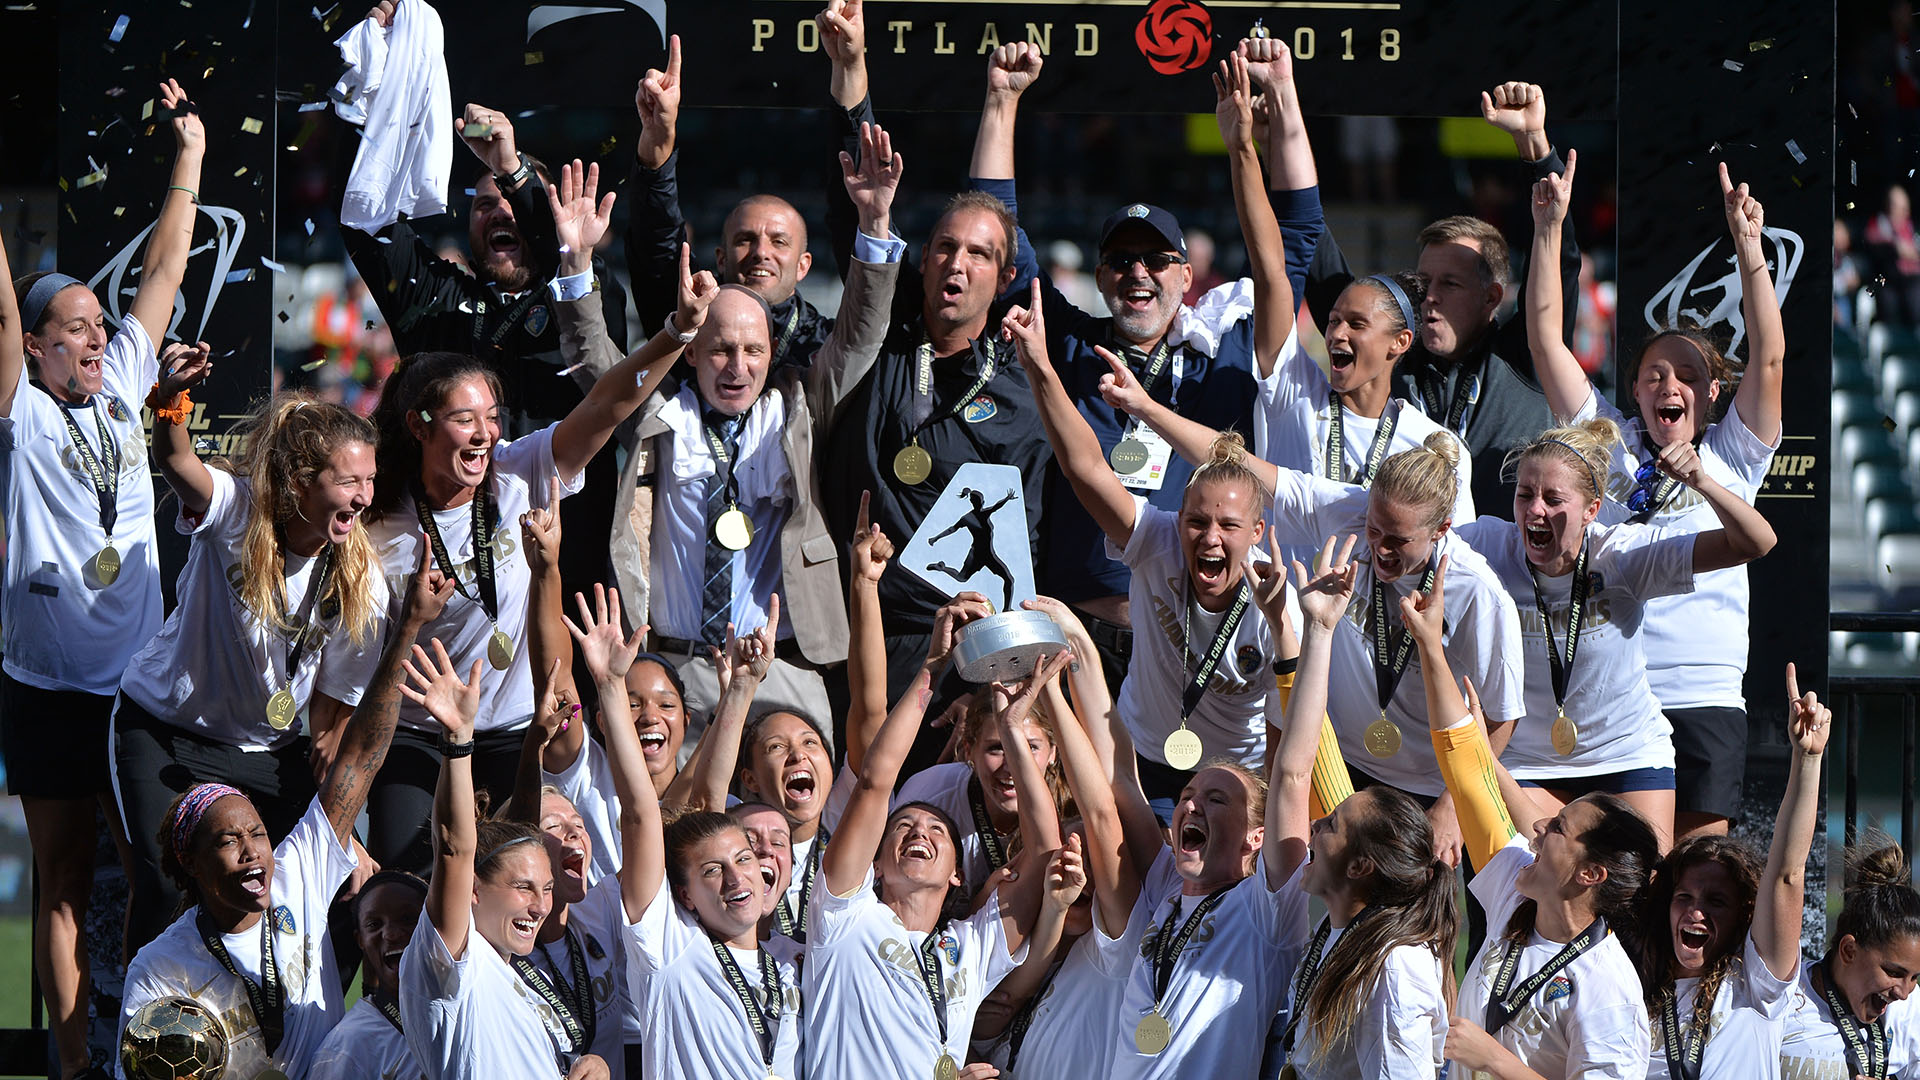 North Carolina Courage captain Abby Erceg and her teammates lift the NWSL Championship trophy after their NWSL Championship win over Portland Thorns FC at Providence Park on September 22, 2018. (Photo credit: John Todd/isiphotos.com)